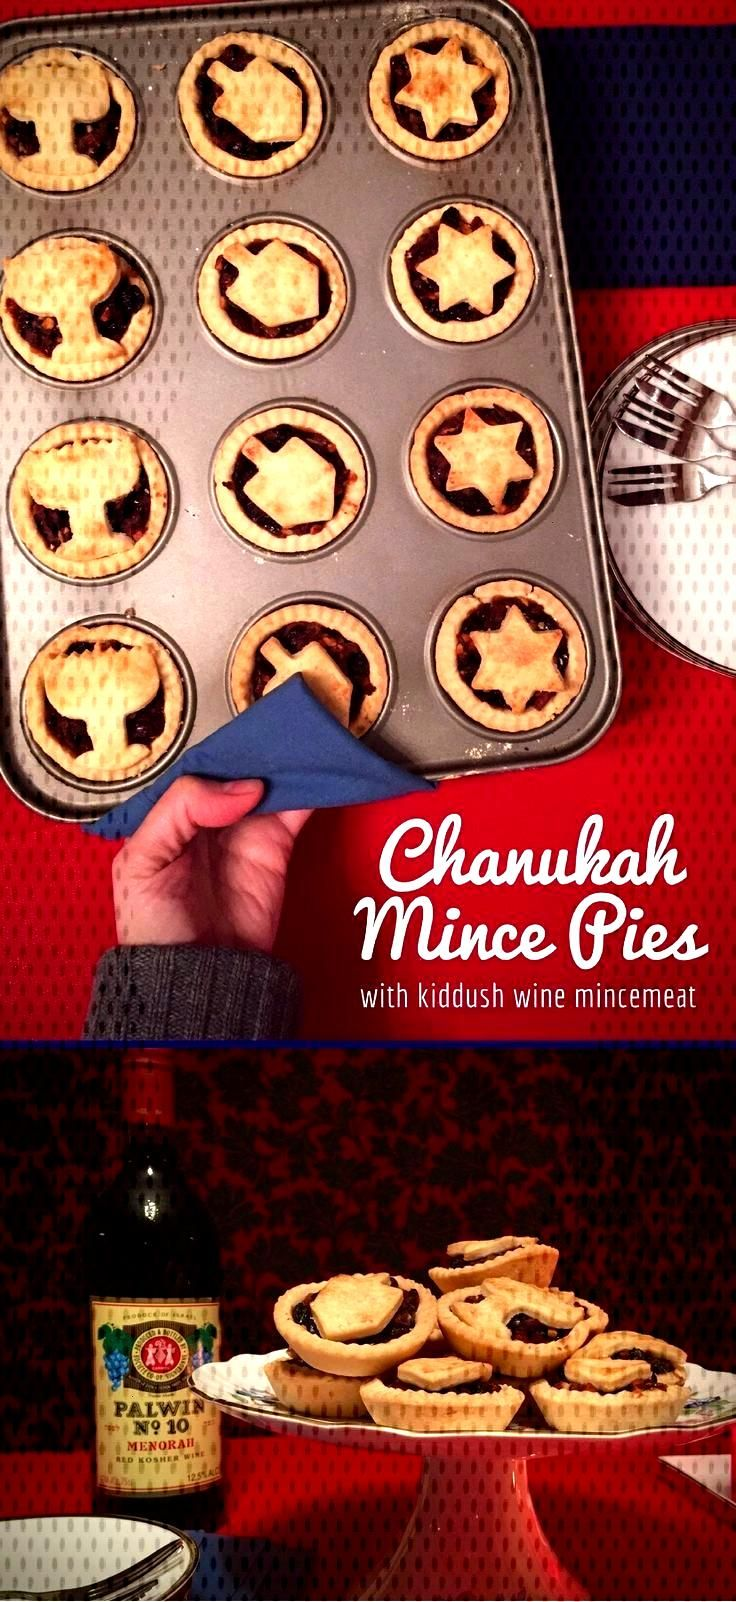 Youll rock Chanukah with fantastic last-minute kiddush wine mince pies! The quick amp easy filling